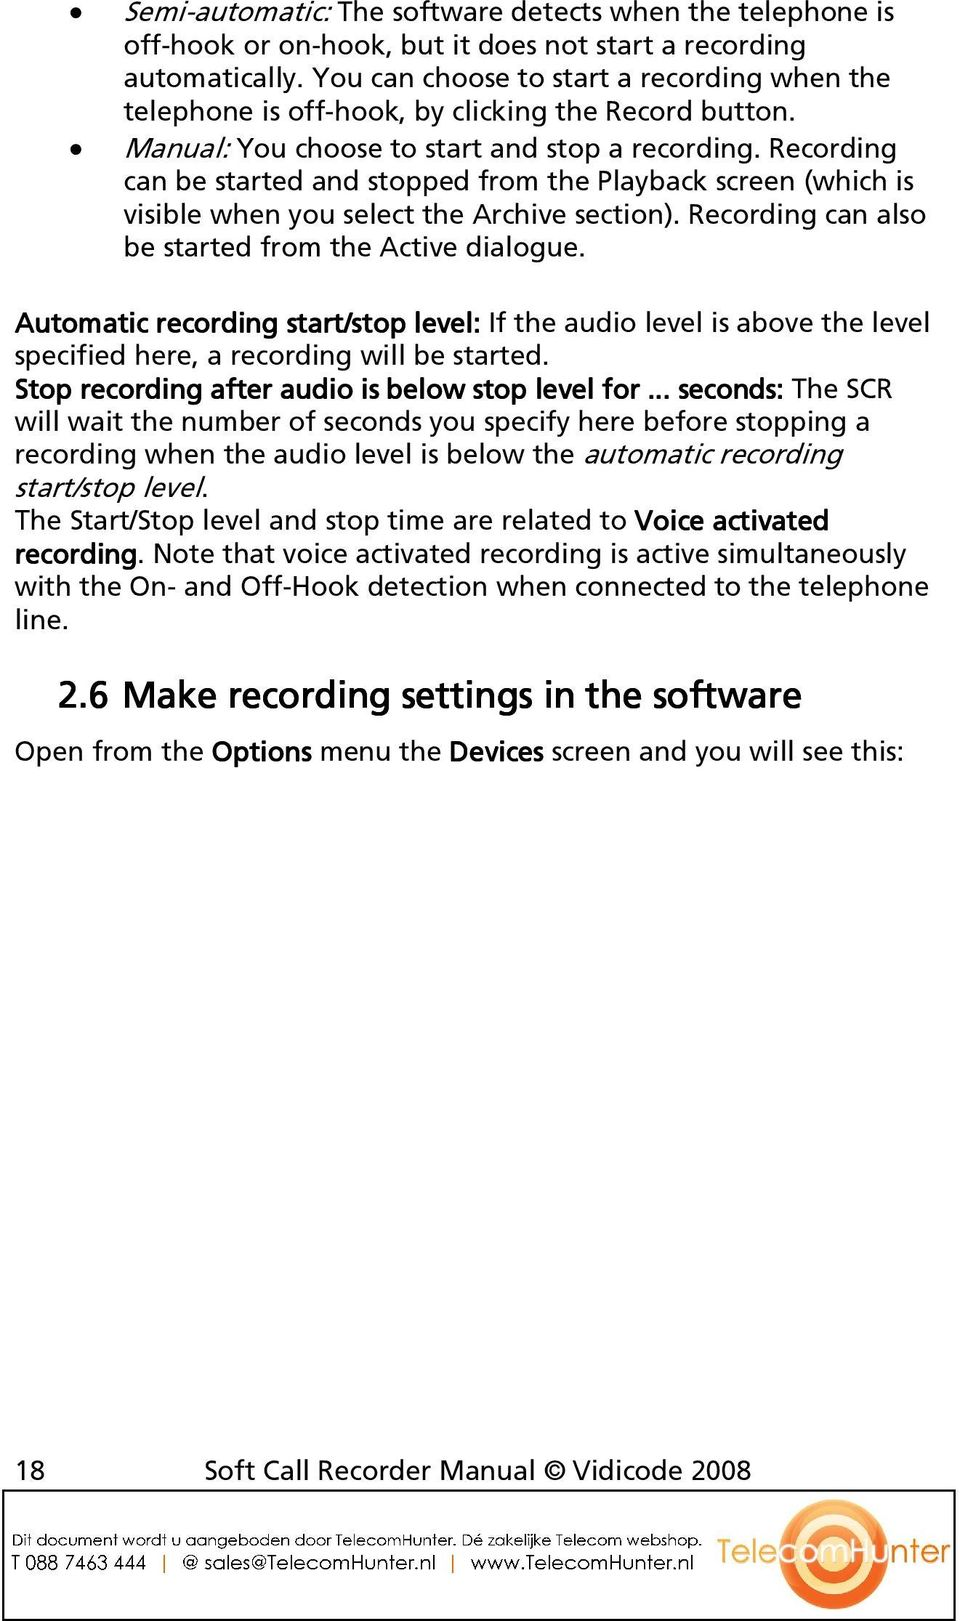 Recording can be started and stopped from the Playback screen (which is visible when you select the Archive section). Recording can also be started from the Active dialogue.